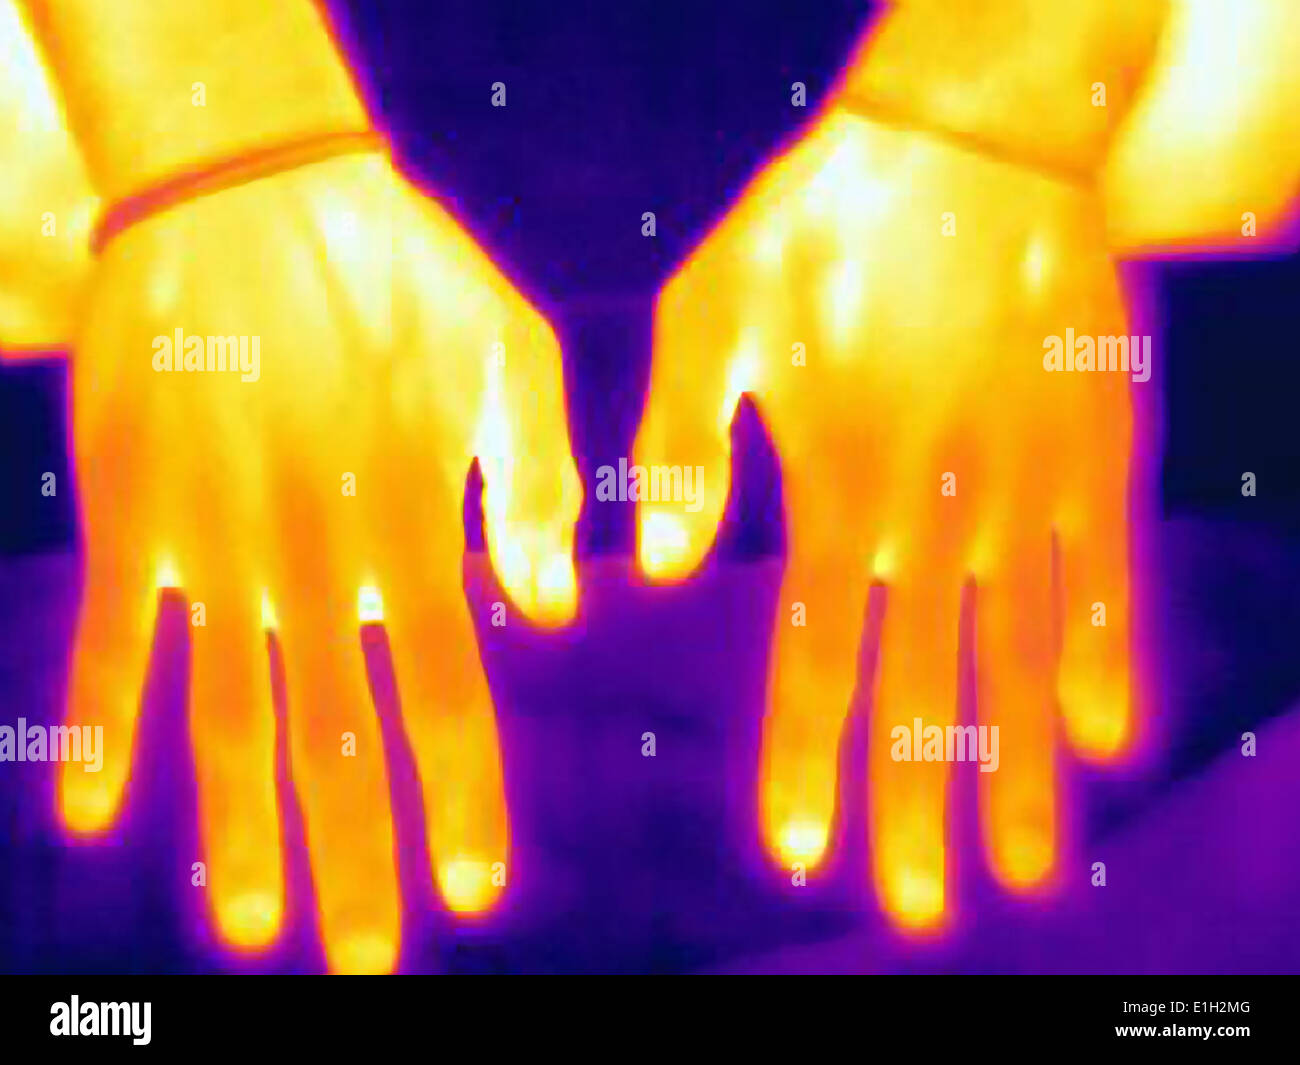 Thermal image of weight lifters hands. The image shows the heat left after training - Stock Image